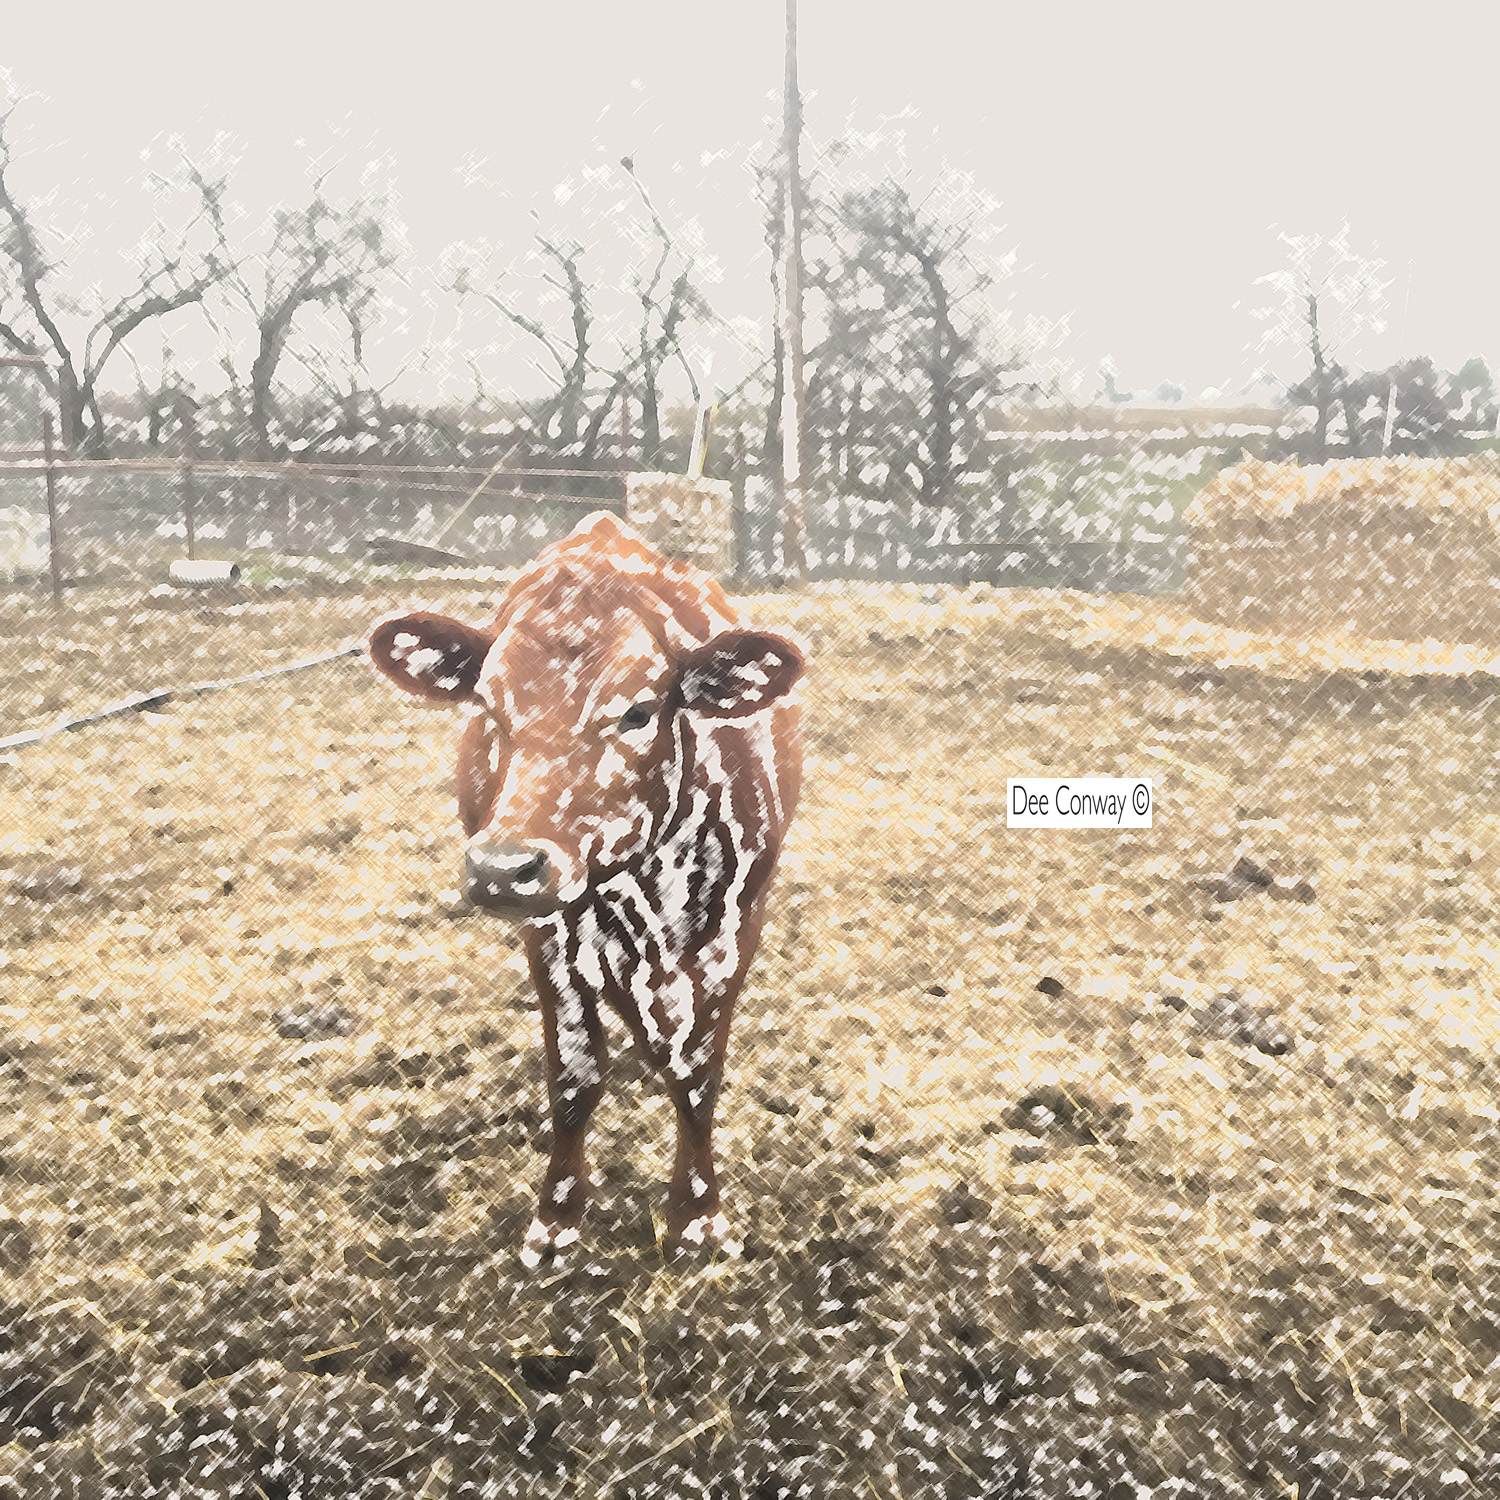 - a different type of cow